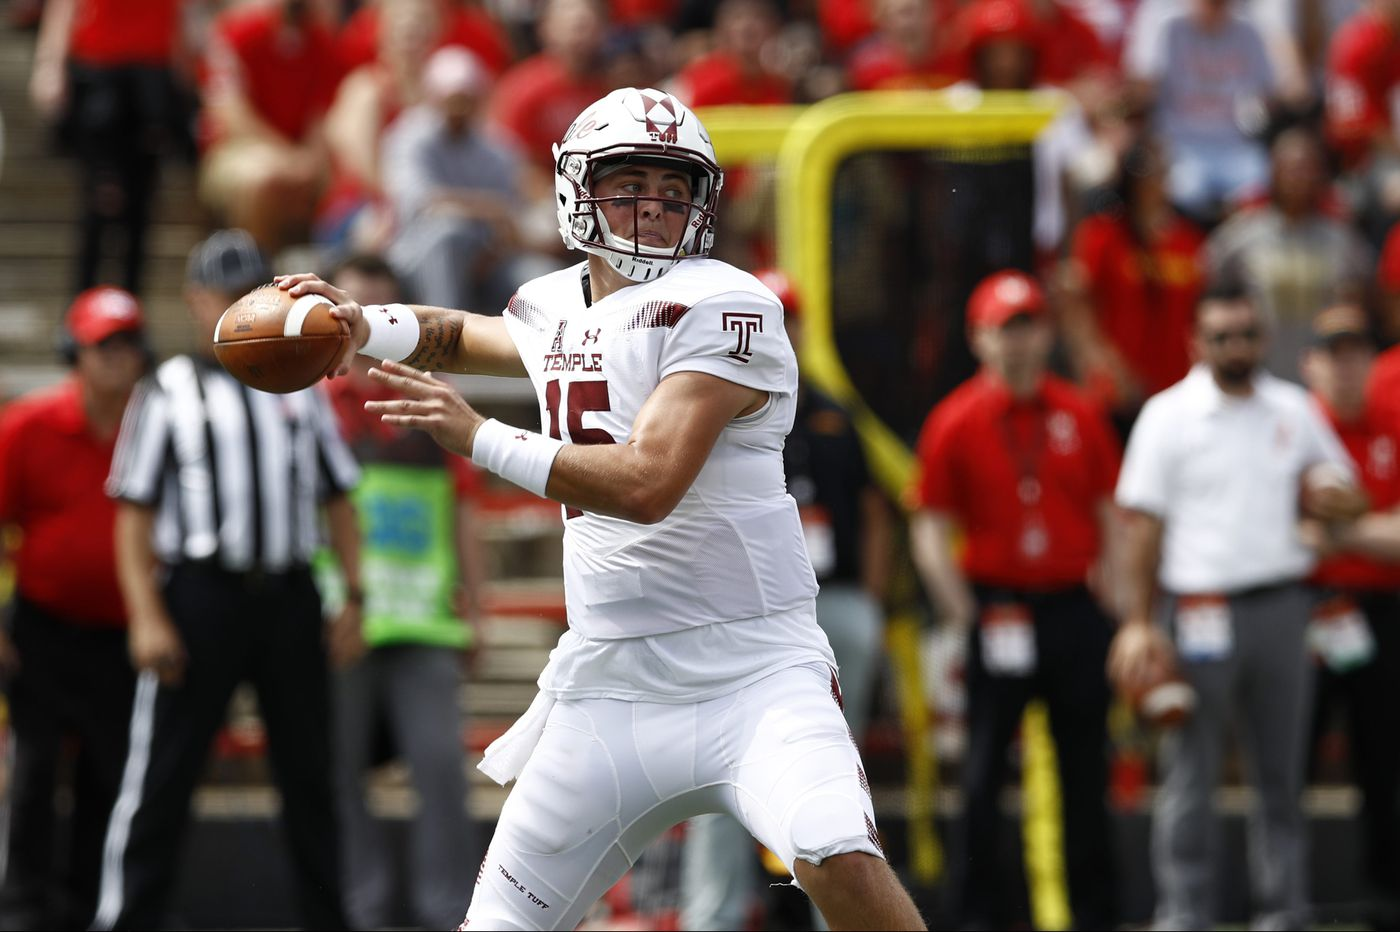 Temple quarterback Anthony Russo savors his first career start in win over Maryland